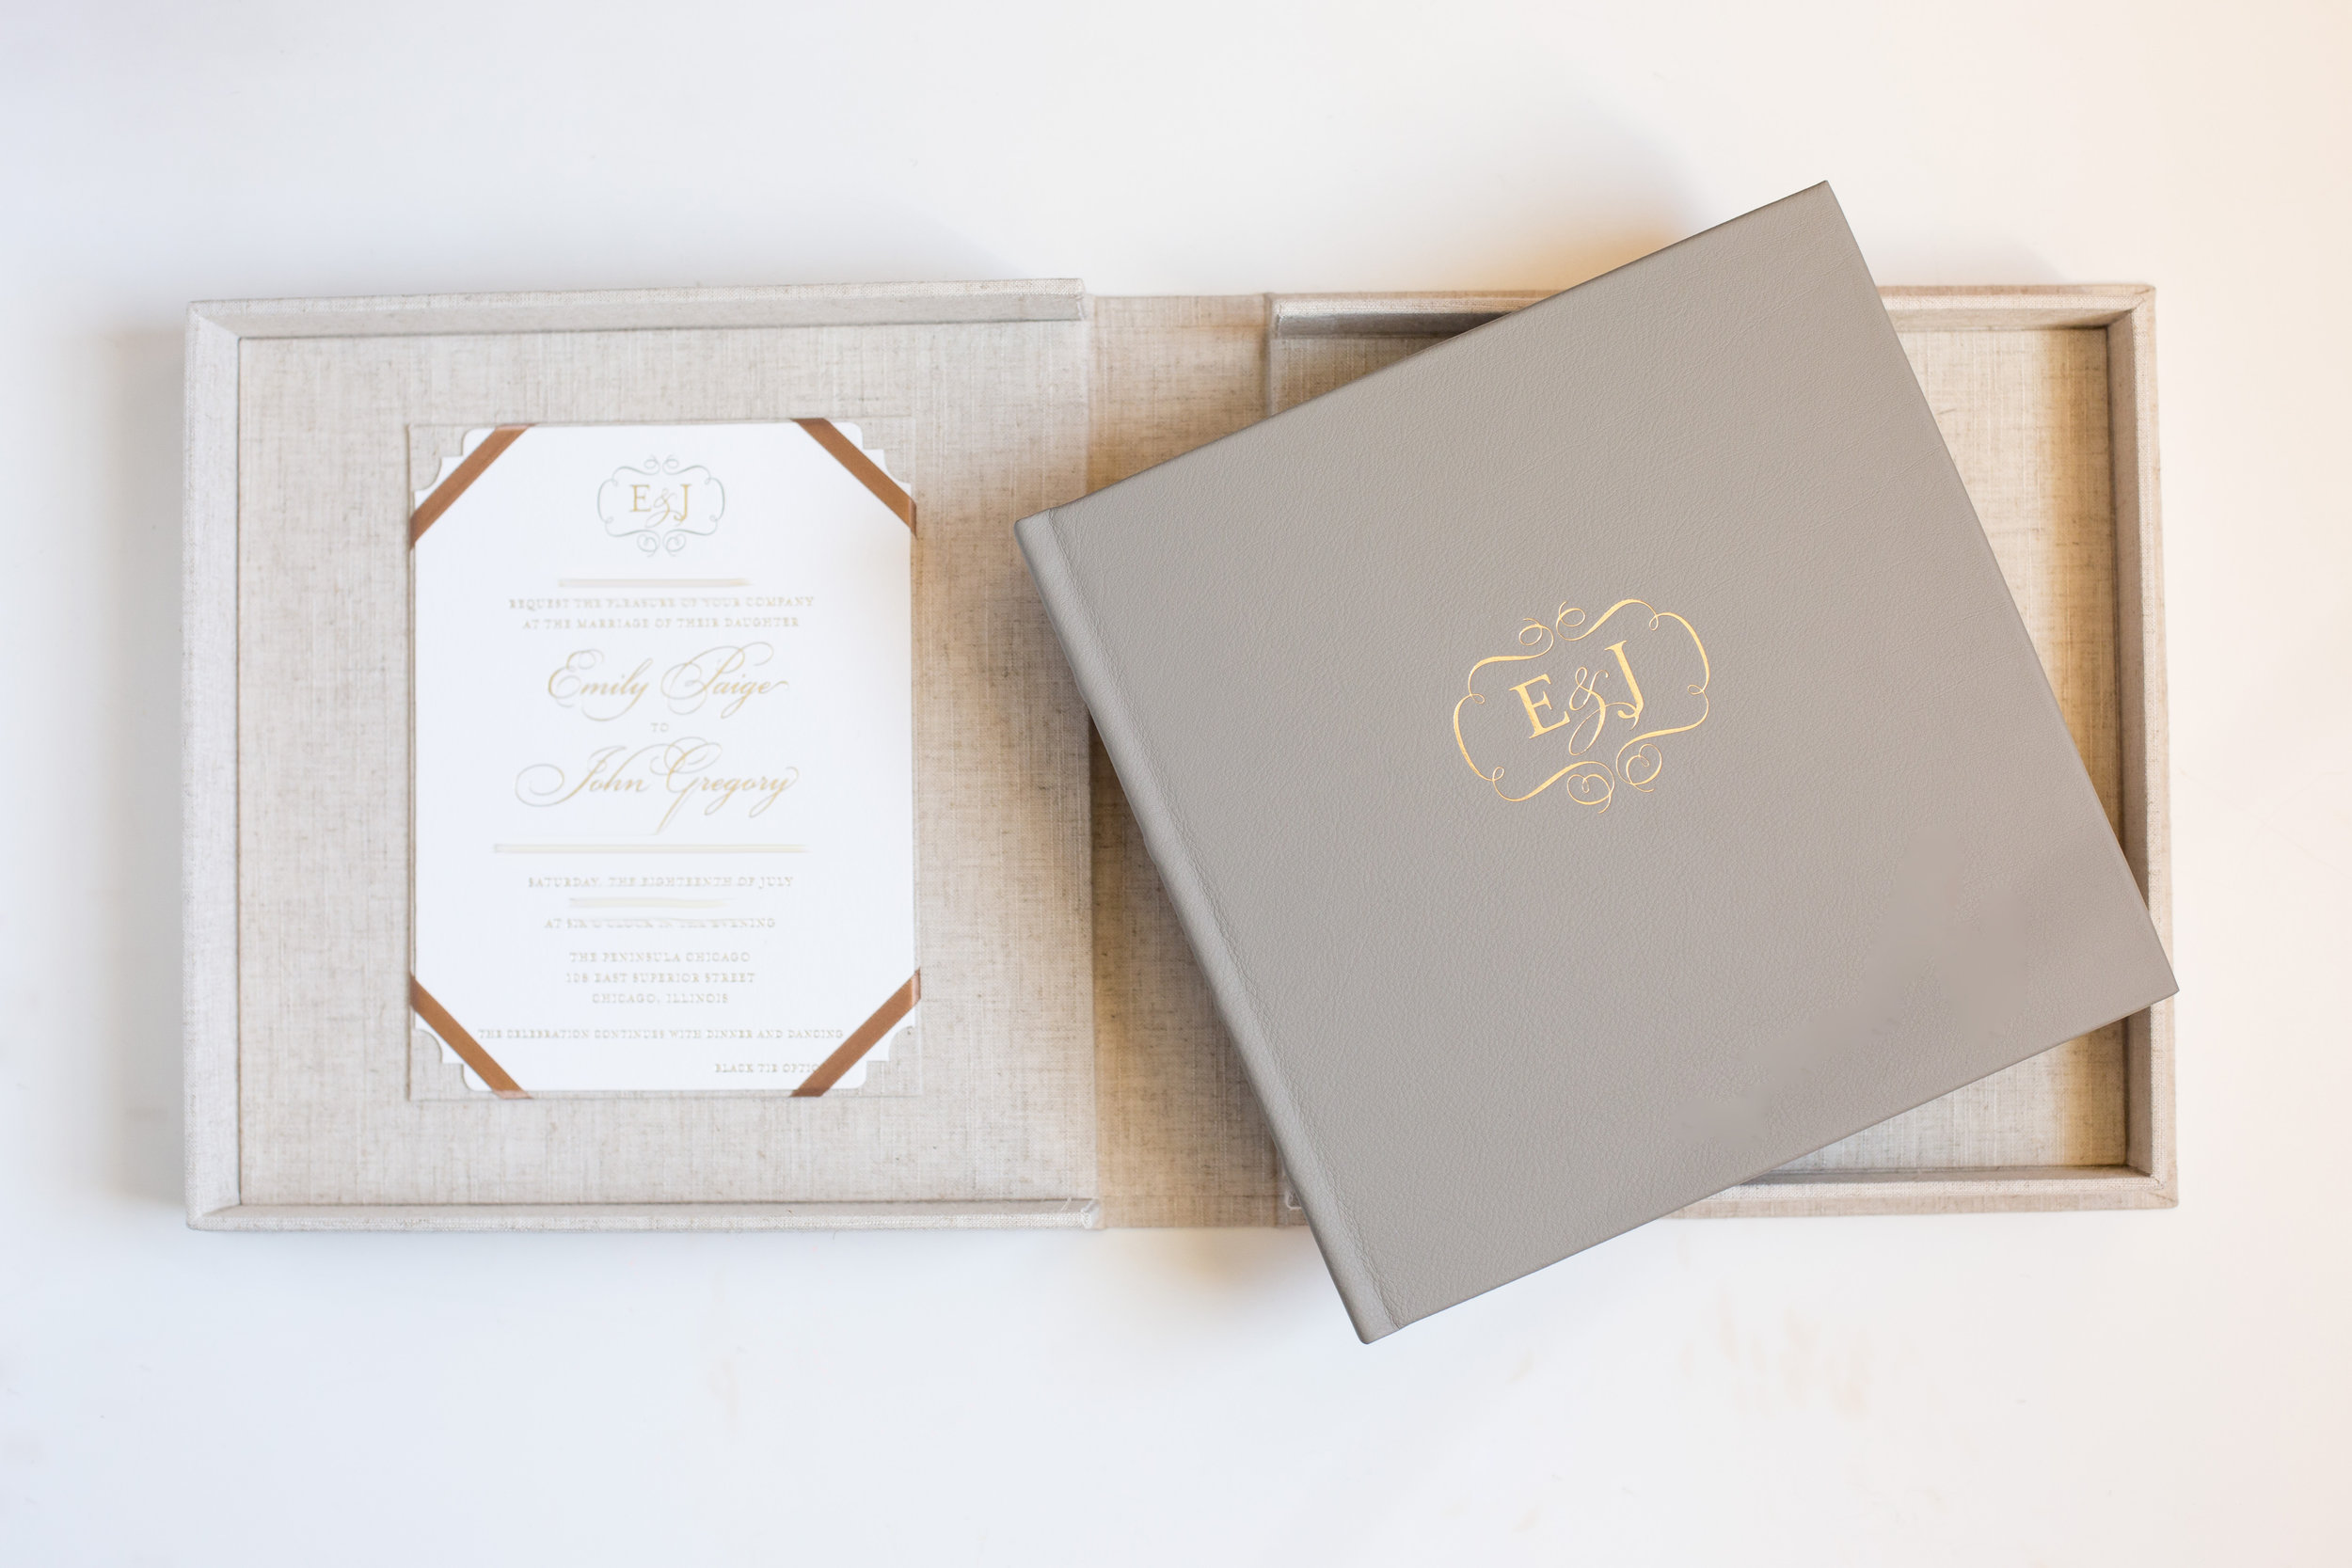 Artisan Collection - The ultimate in custom coffee table book elegance. Refined design. curated luxury. highest QUALITY everything. endless options to customize. this is a proprietary artisan events® album collection you won't find anywhere else.